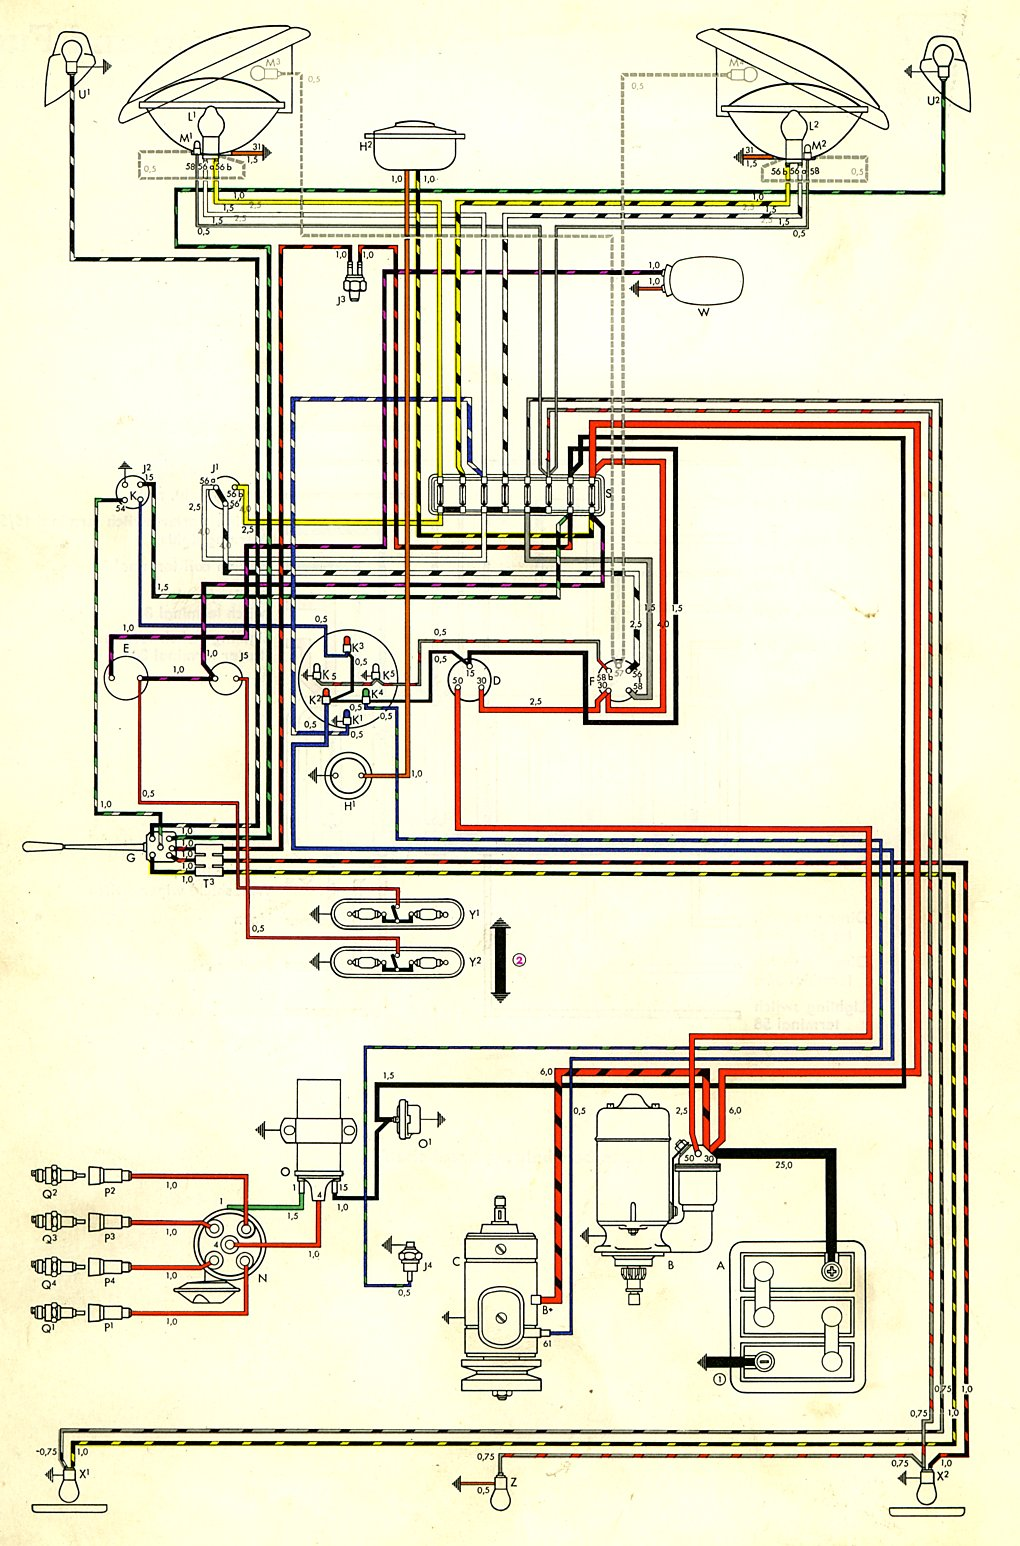 1971 Ford F250 Ignition Wiring Diagram Starting Know About 89 Jeep Comanche Fuse Box Chevy Truck Rh Prezzy Co